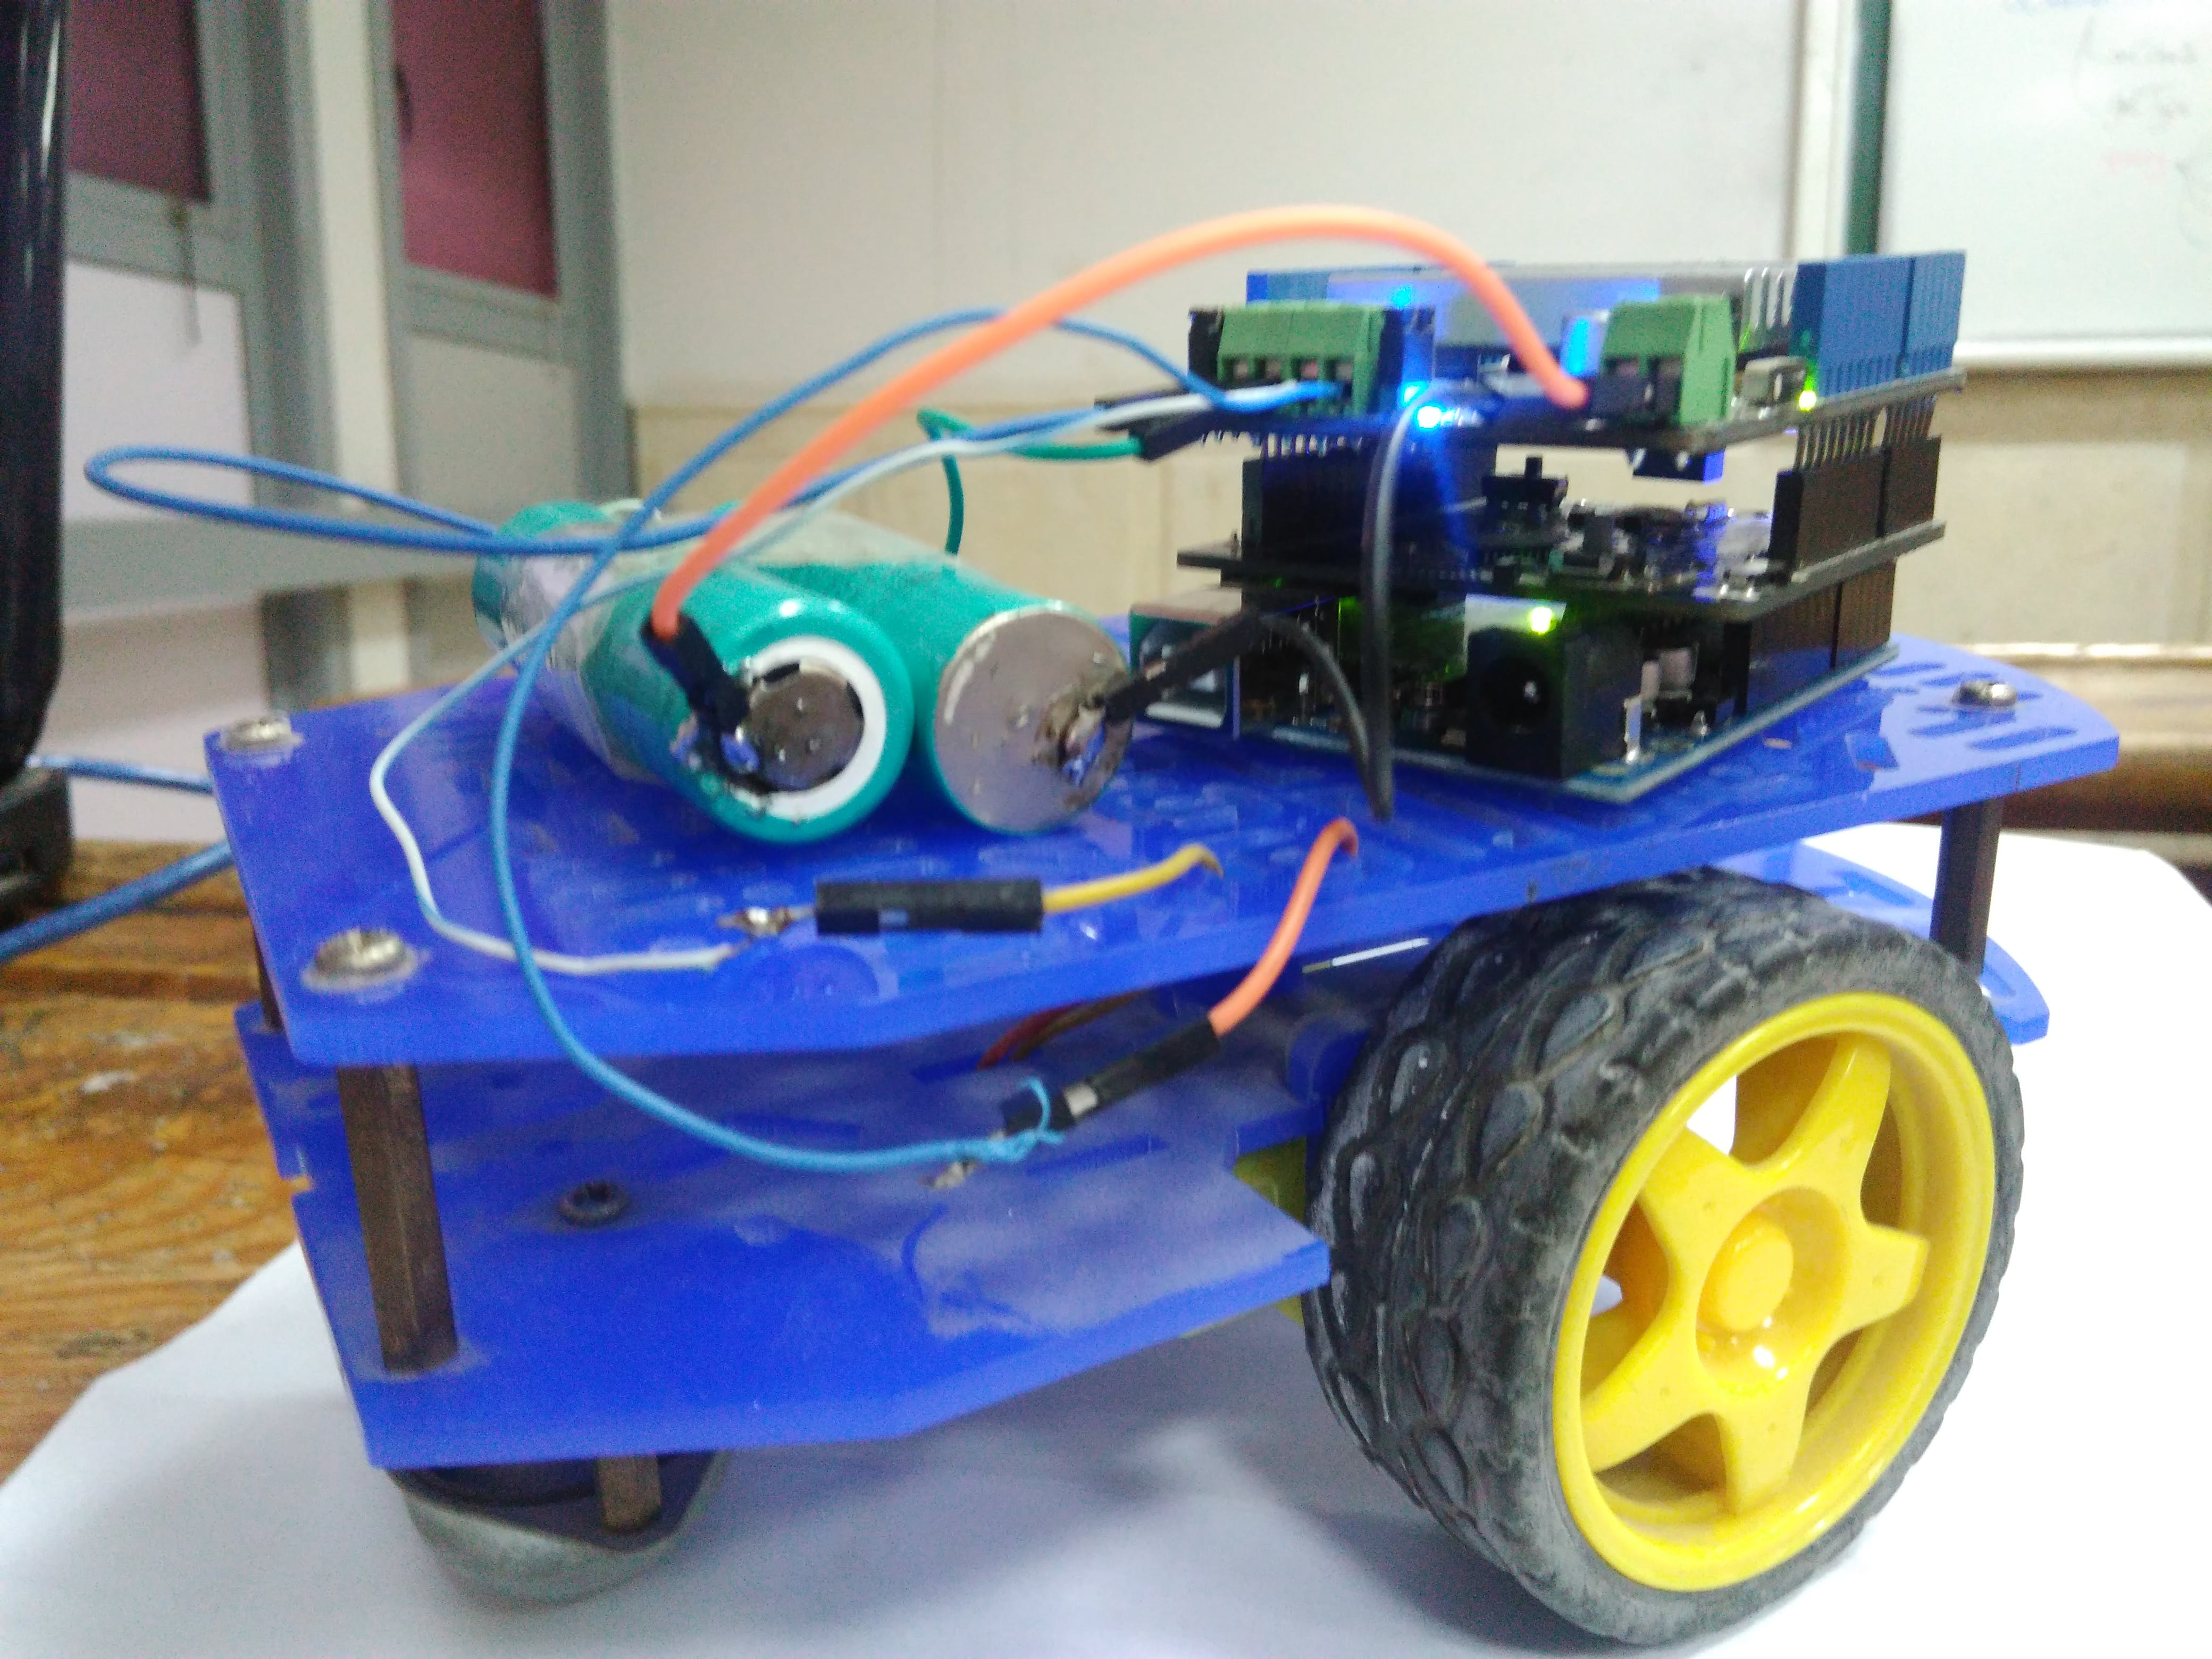 Wireless robot controlled by pointing with your smartphone o